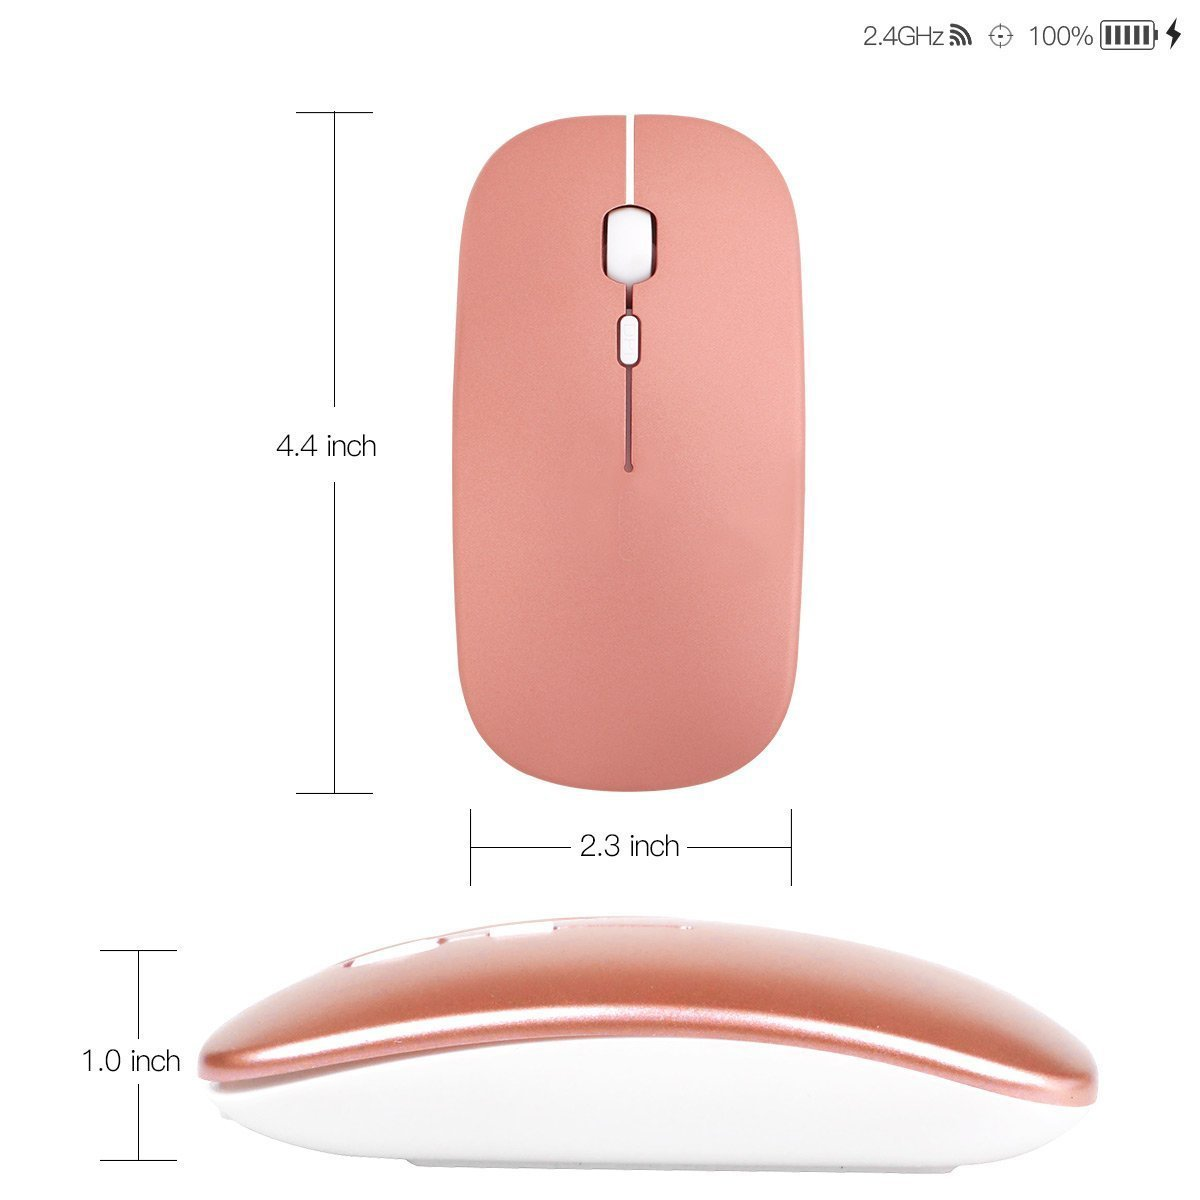 Lightstory Rechargeable Wireless Mouse